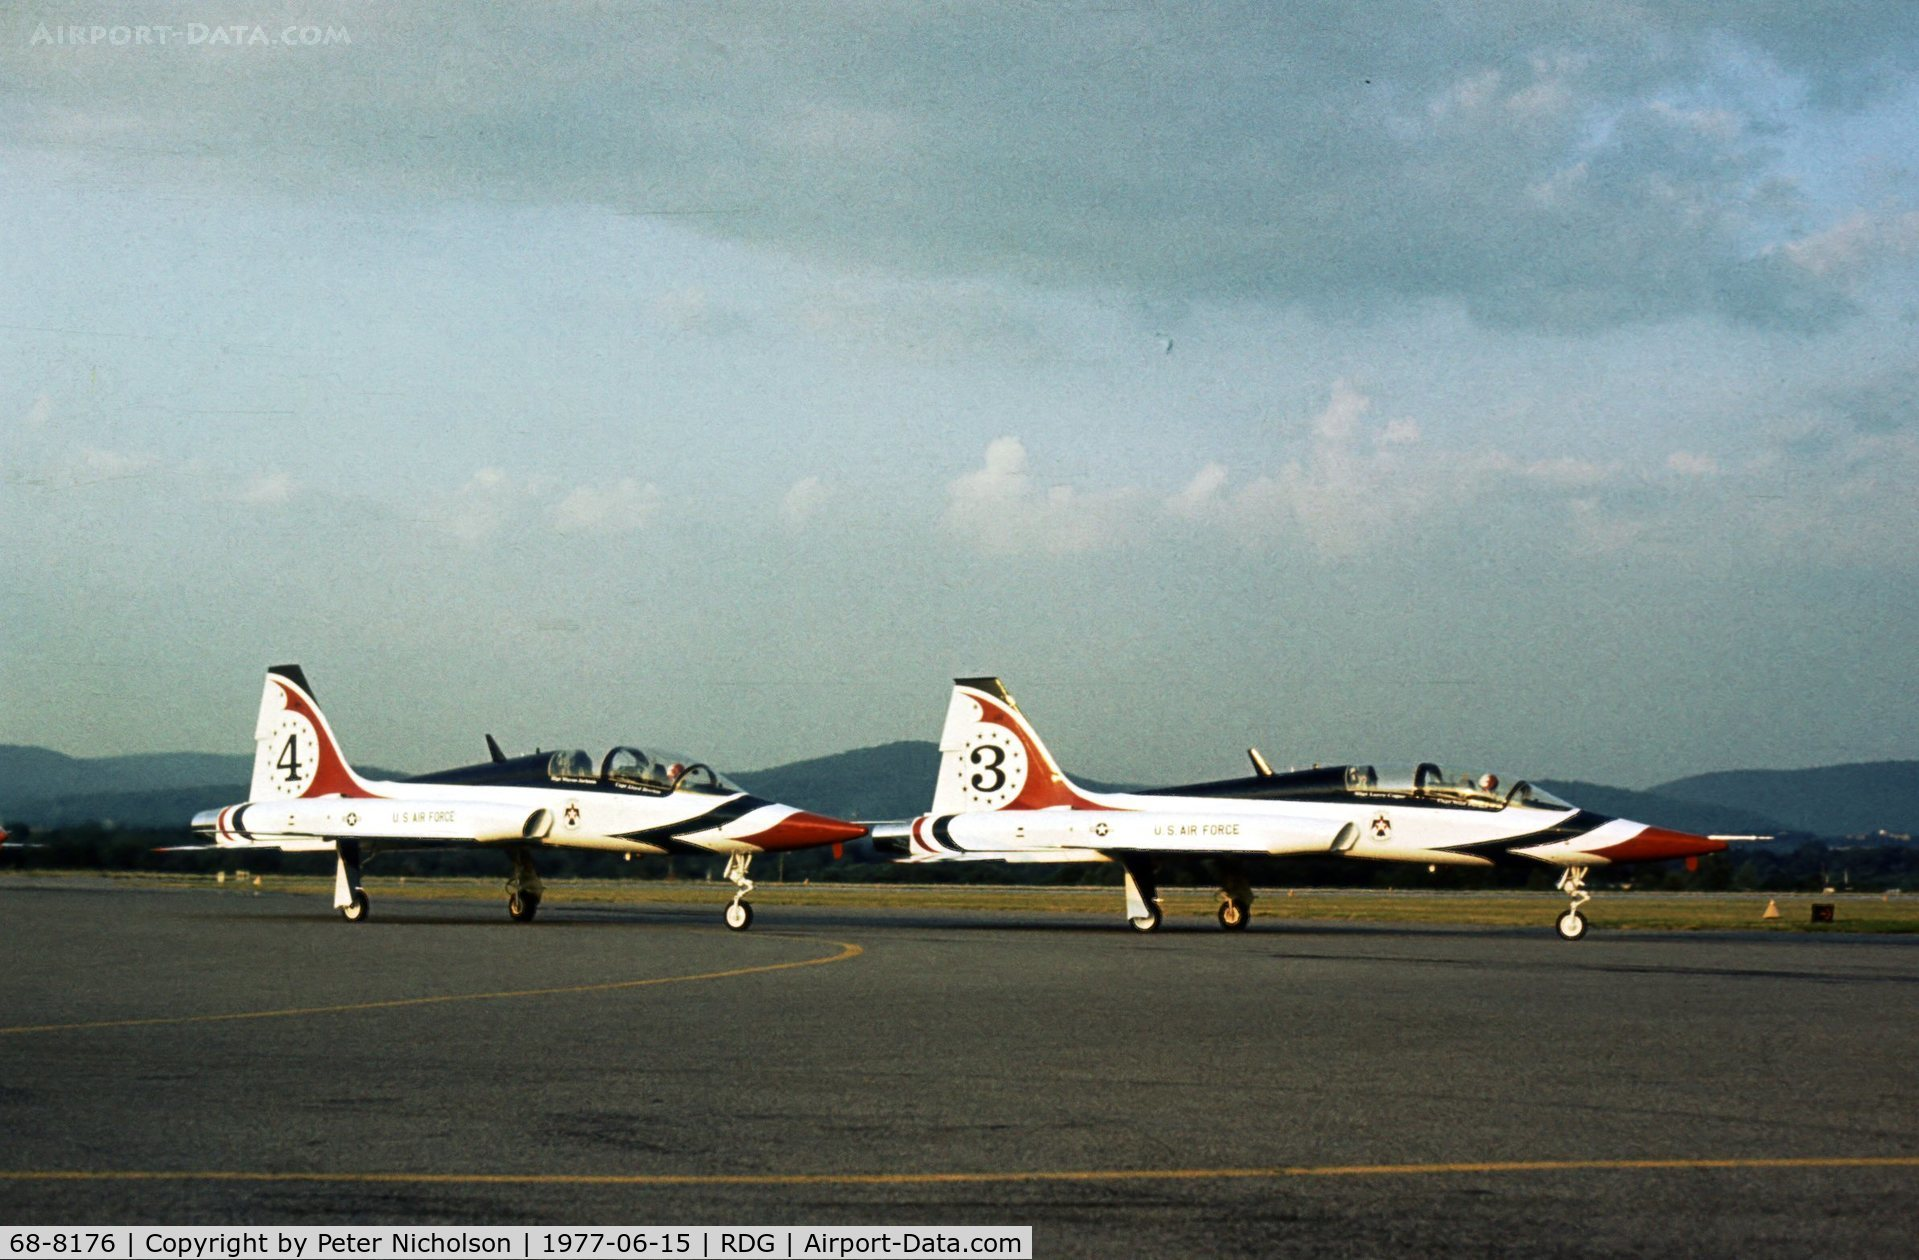 68-8176, Northrop T-38A Talon C/N T.6181, Talon number 3, together with number 4 68-8175, of the Thunderbirds Flight Demonstration Team at the 1977 Reading Airshow